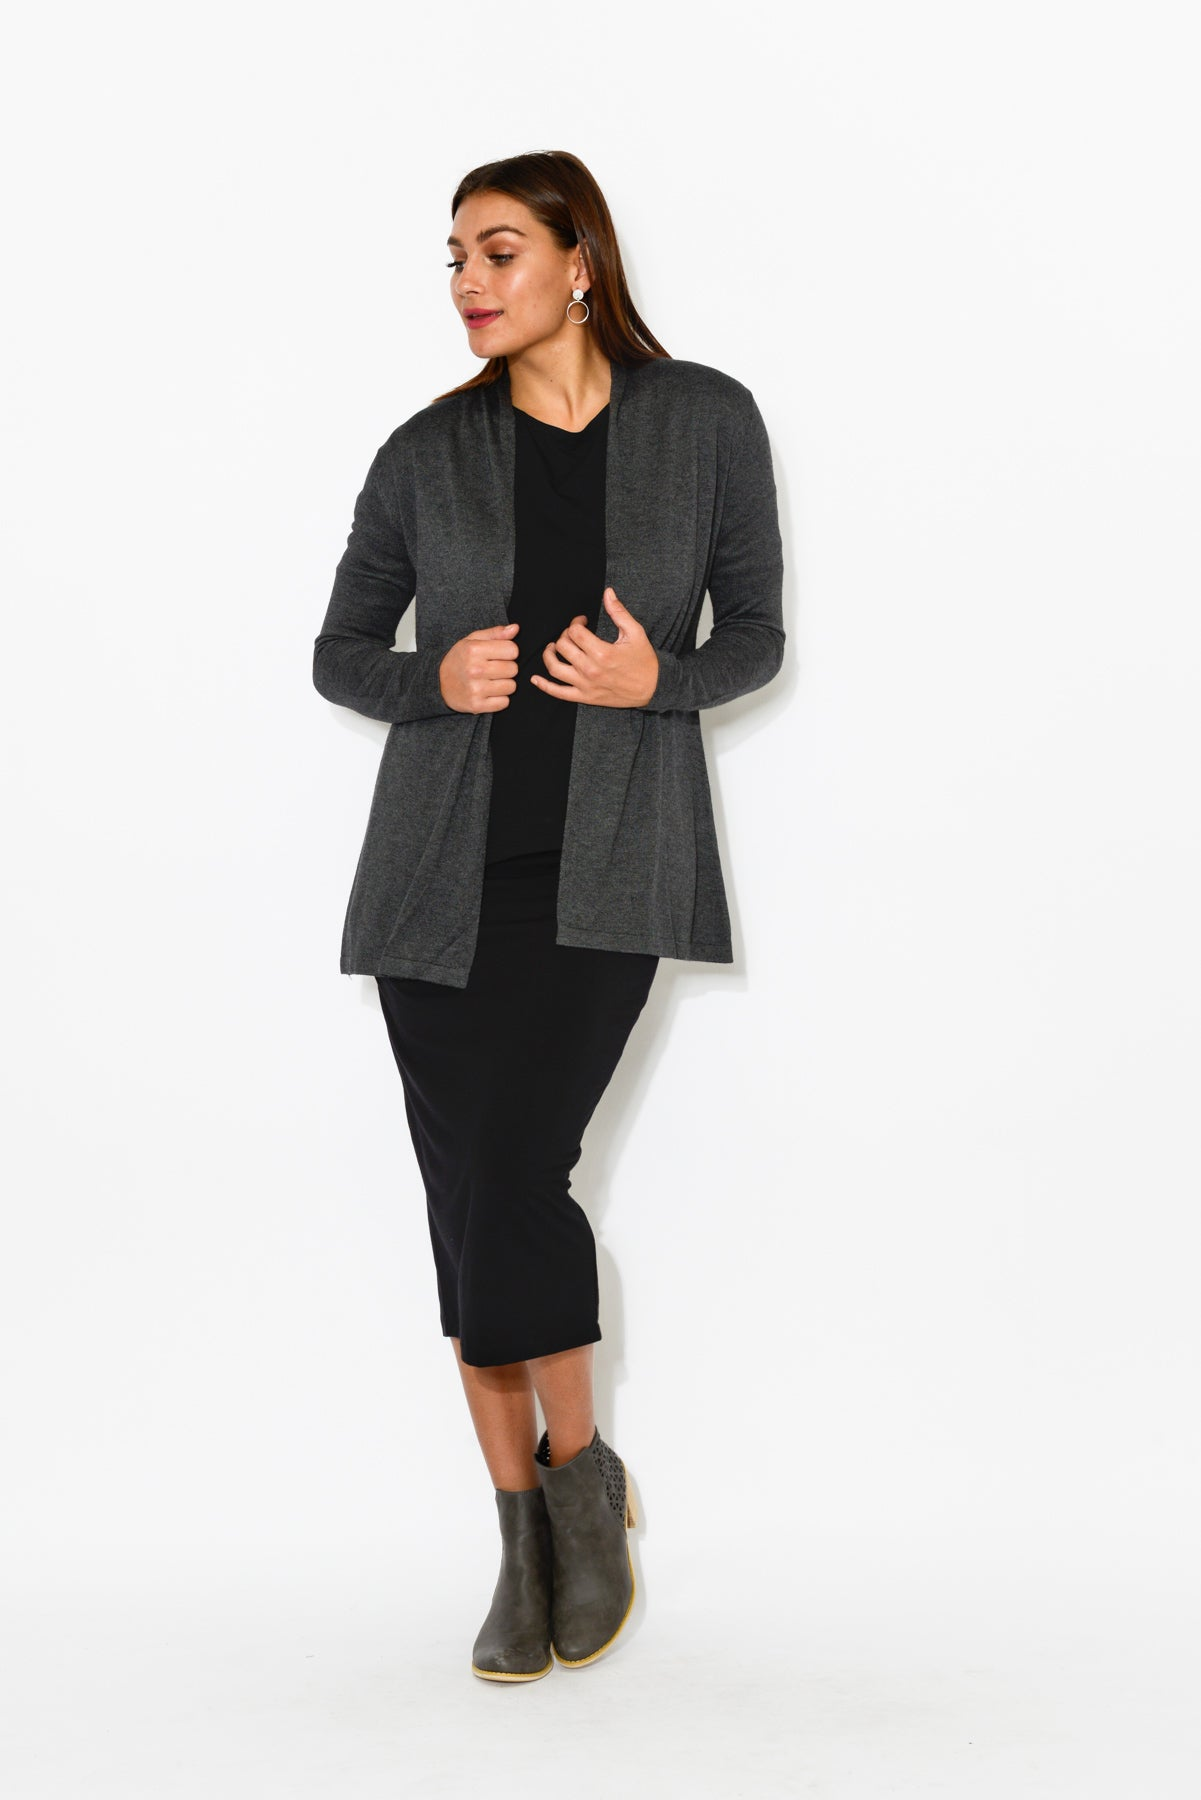 Charcoal Bamboo Wool Knit Cardigan - Blue Bungalow